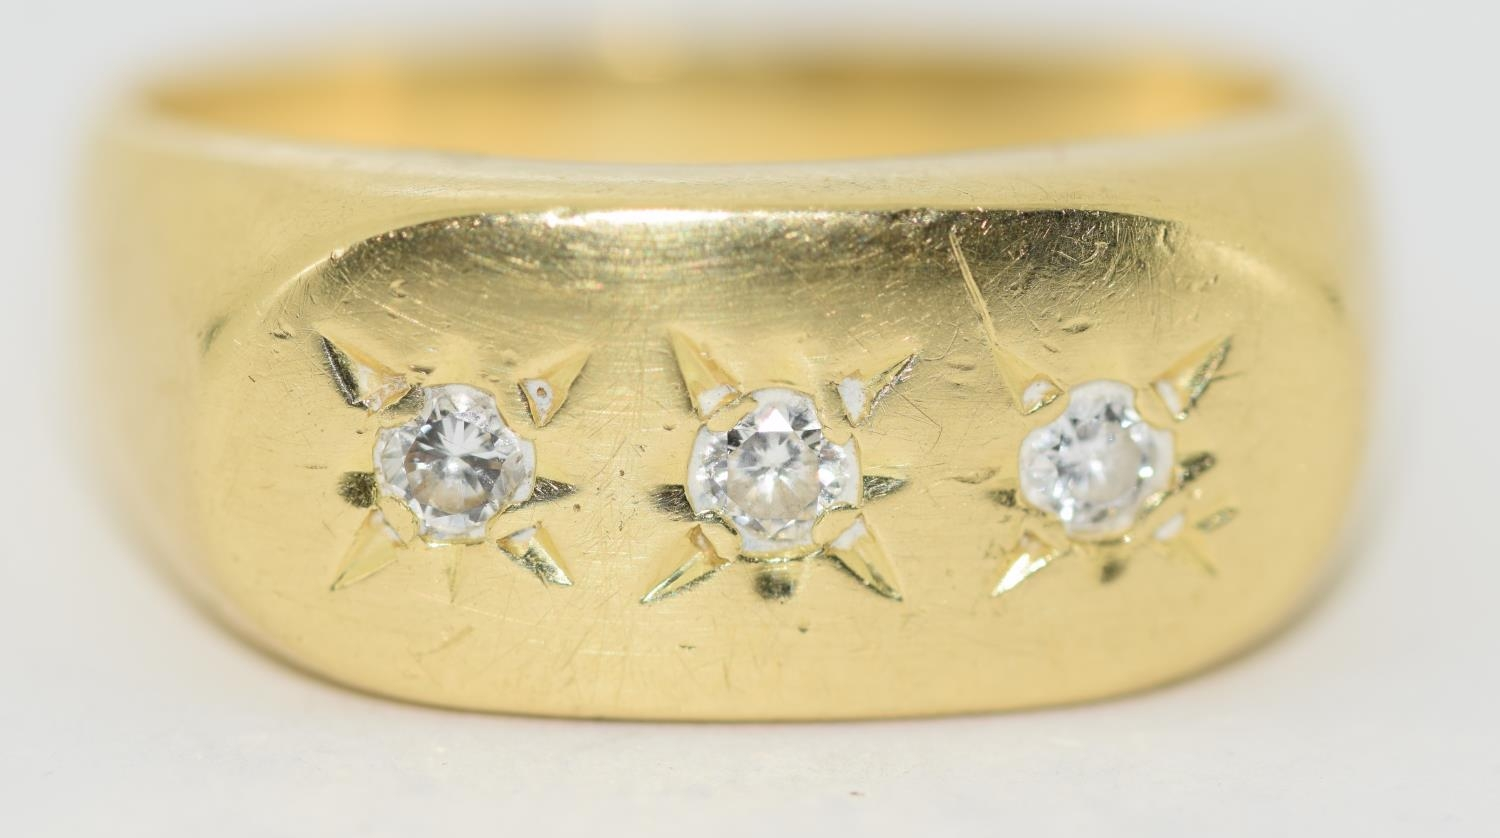 18ct gold Gypsy 3 stone diamond ring size S - Image 5 of 5